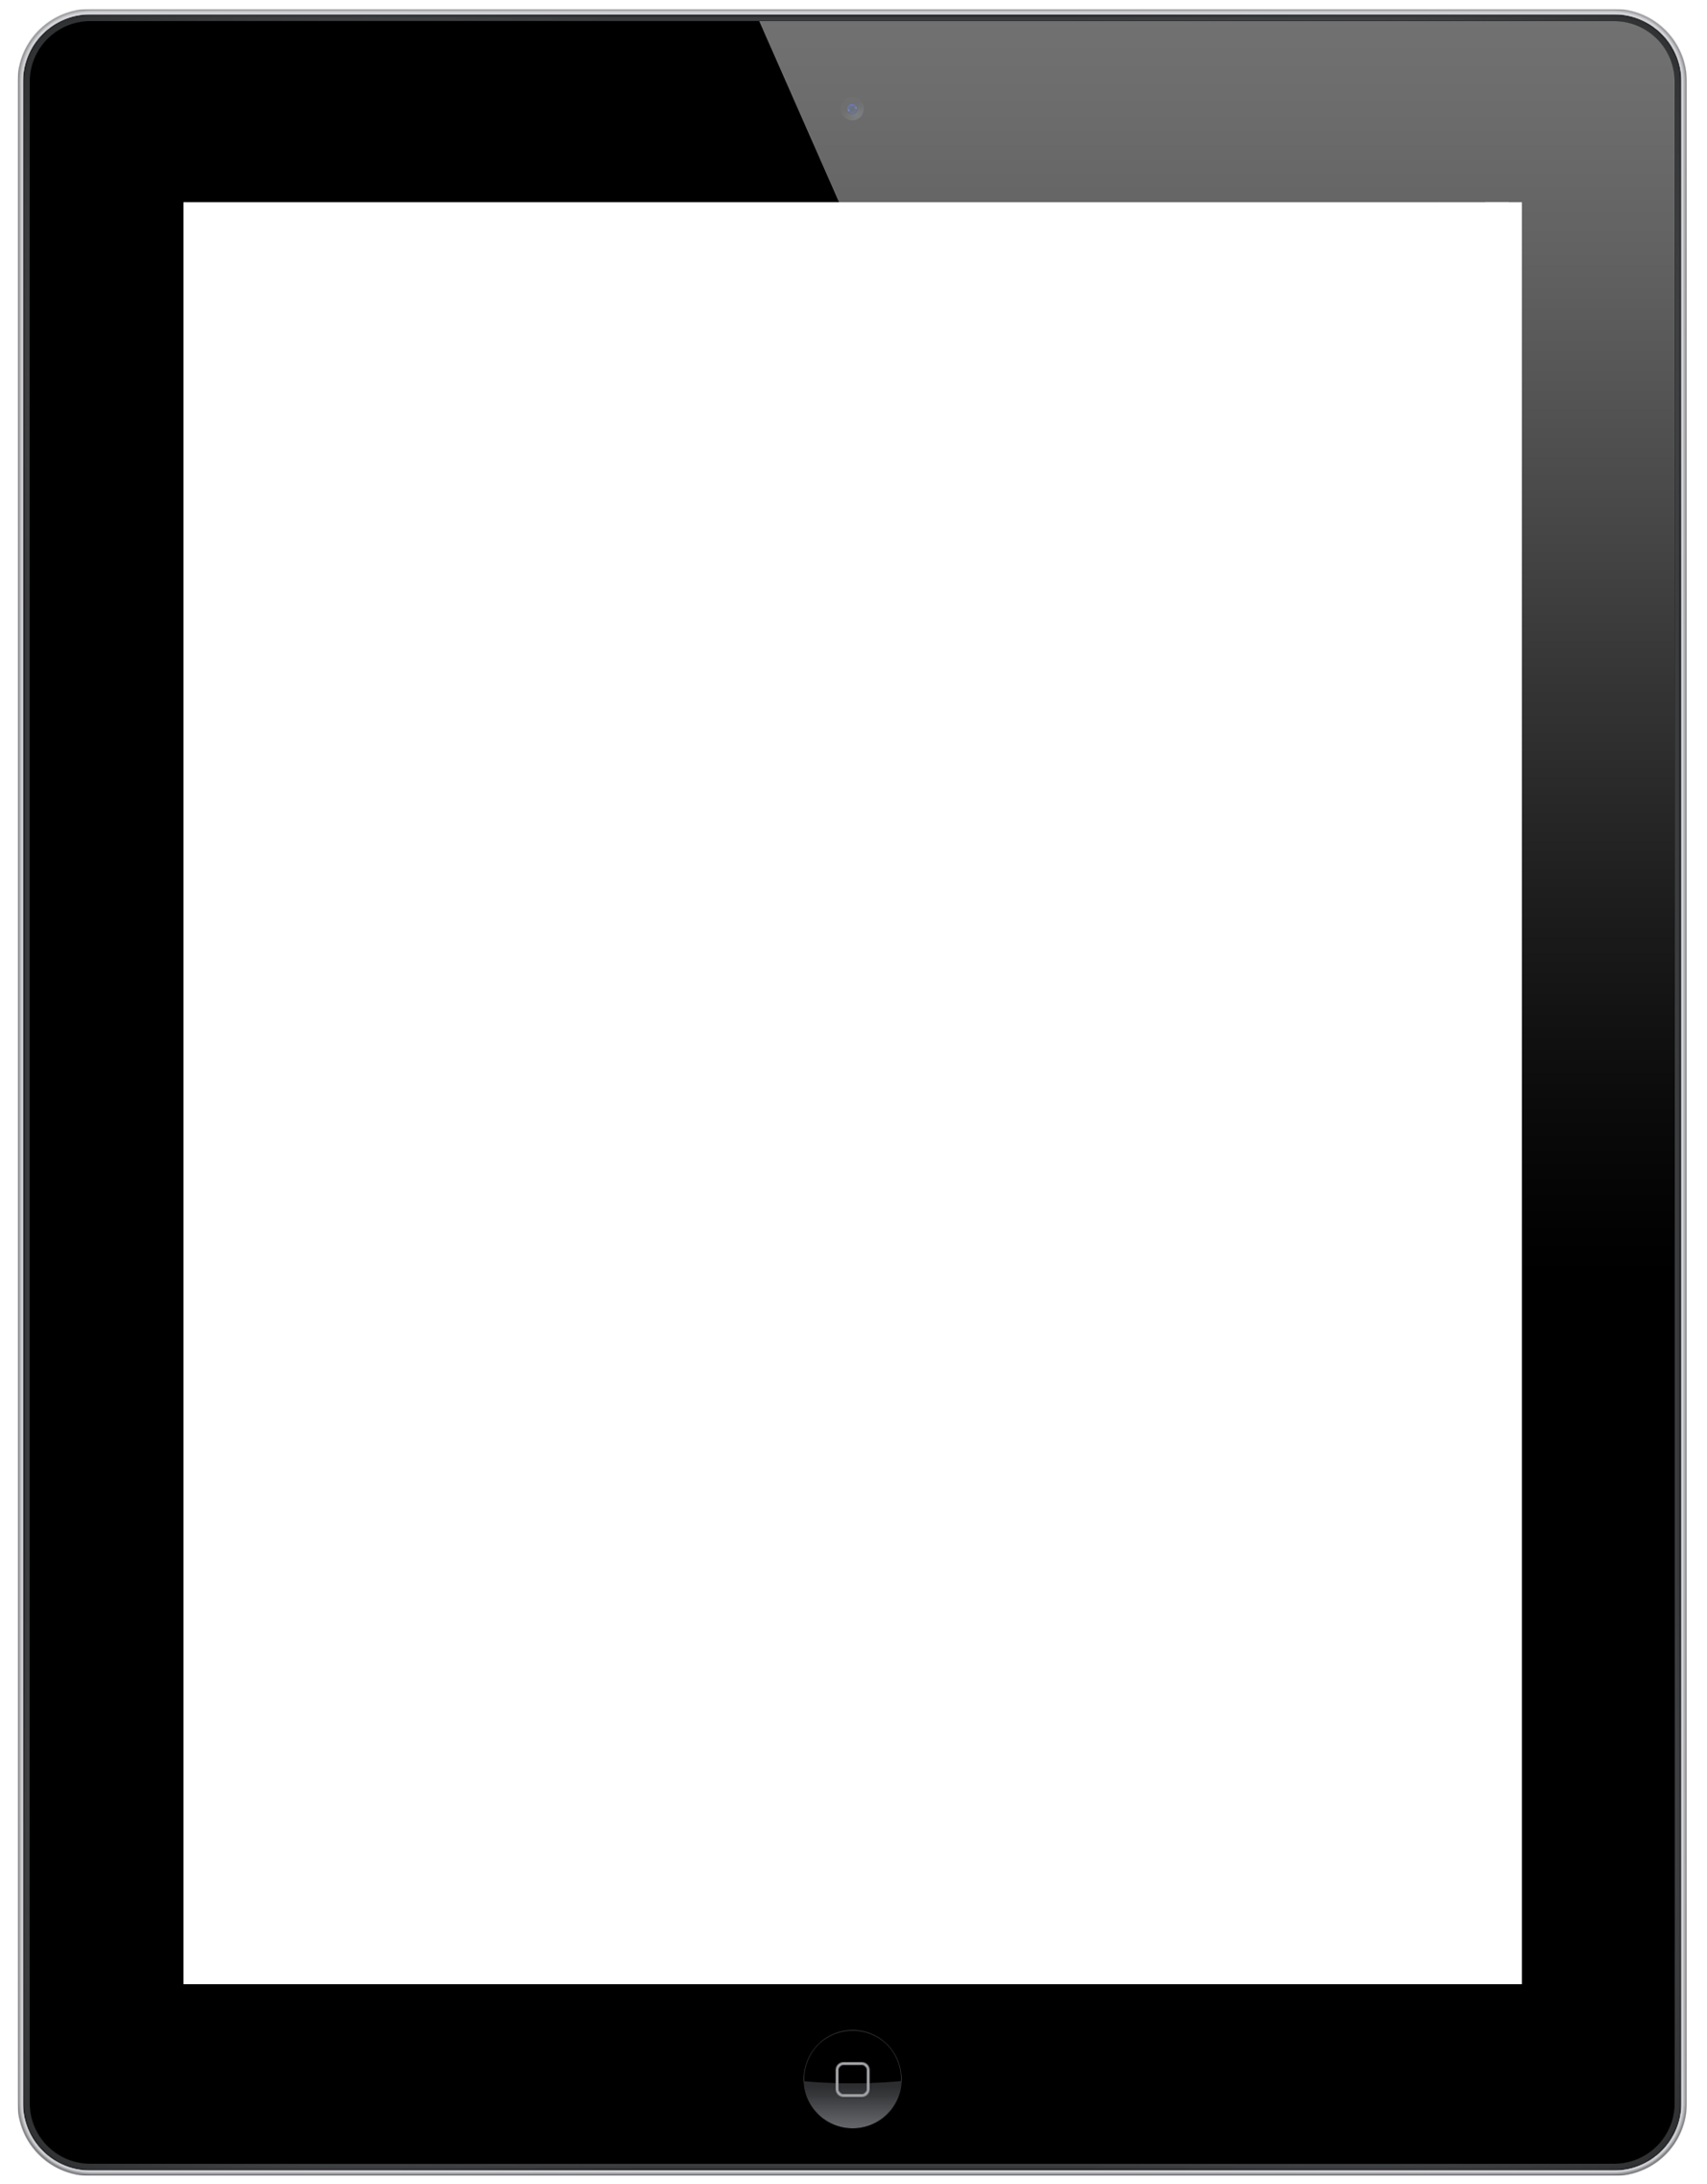 Ipad Tablet PNG Image